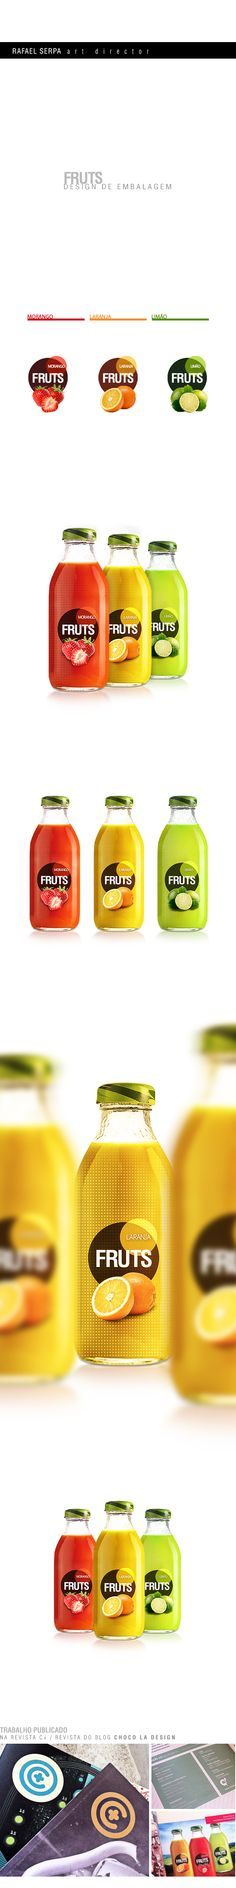 Embalagem - Fruts Juice by Rafael Serpa, via Behance